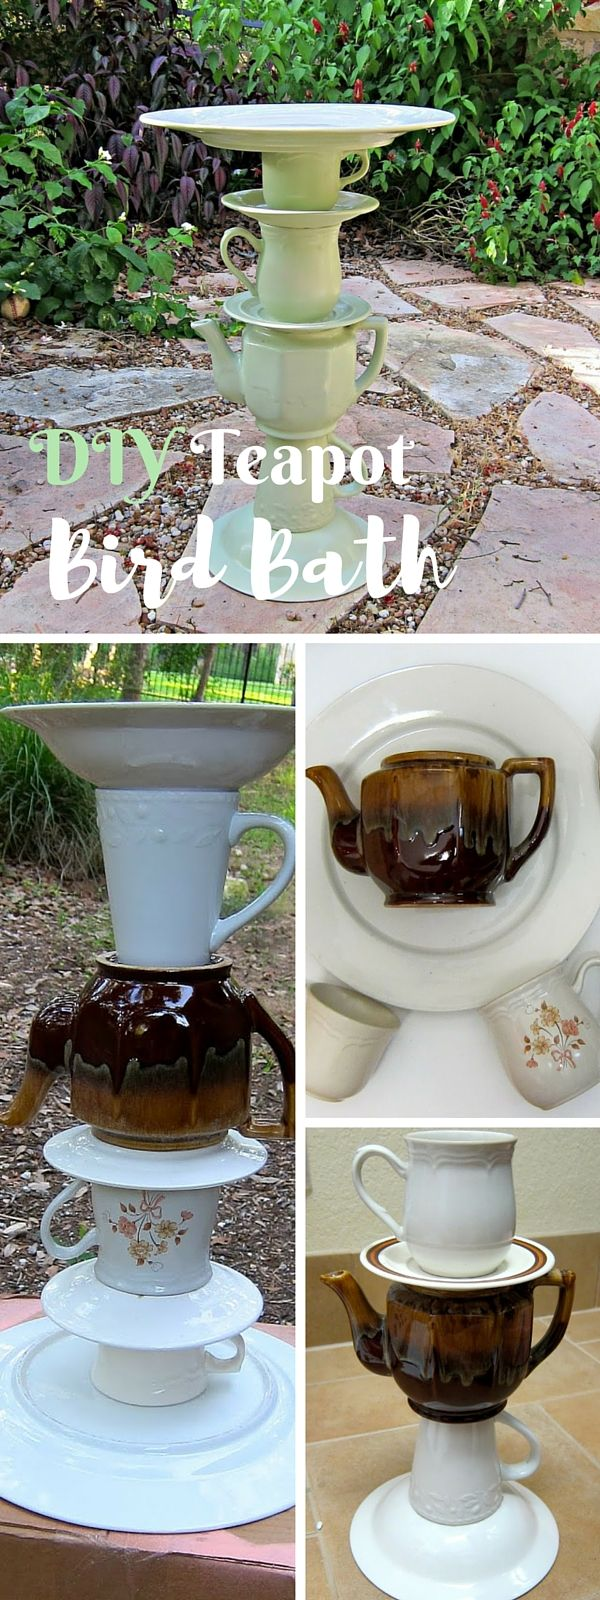 Check out the tutorial: #DIY Teapot Bird Bath #garden #crafts